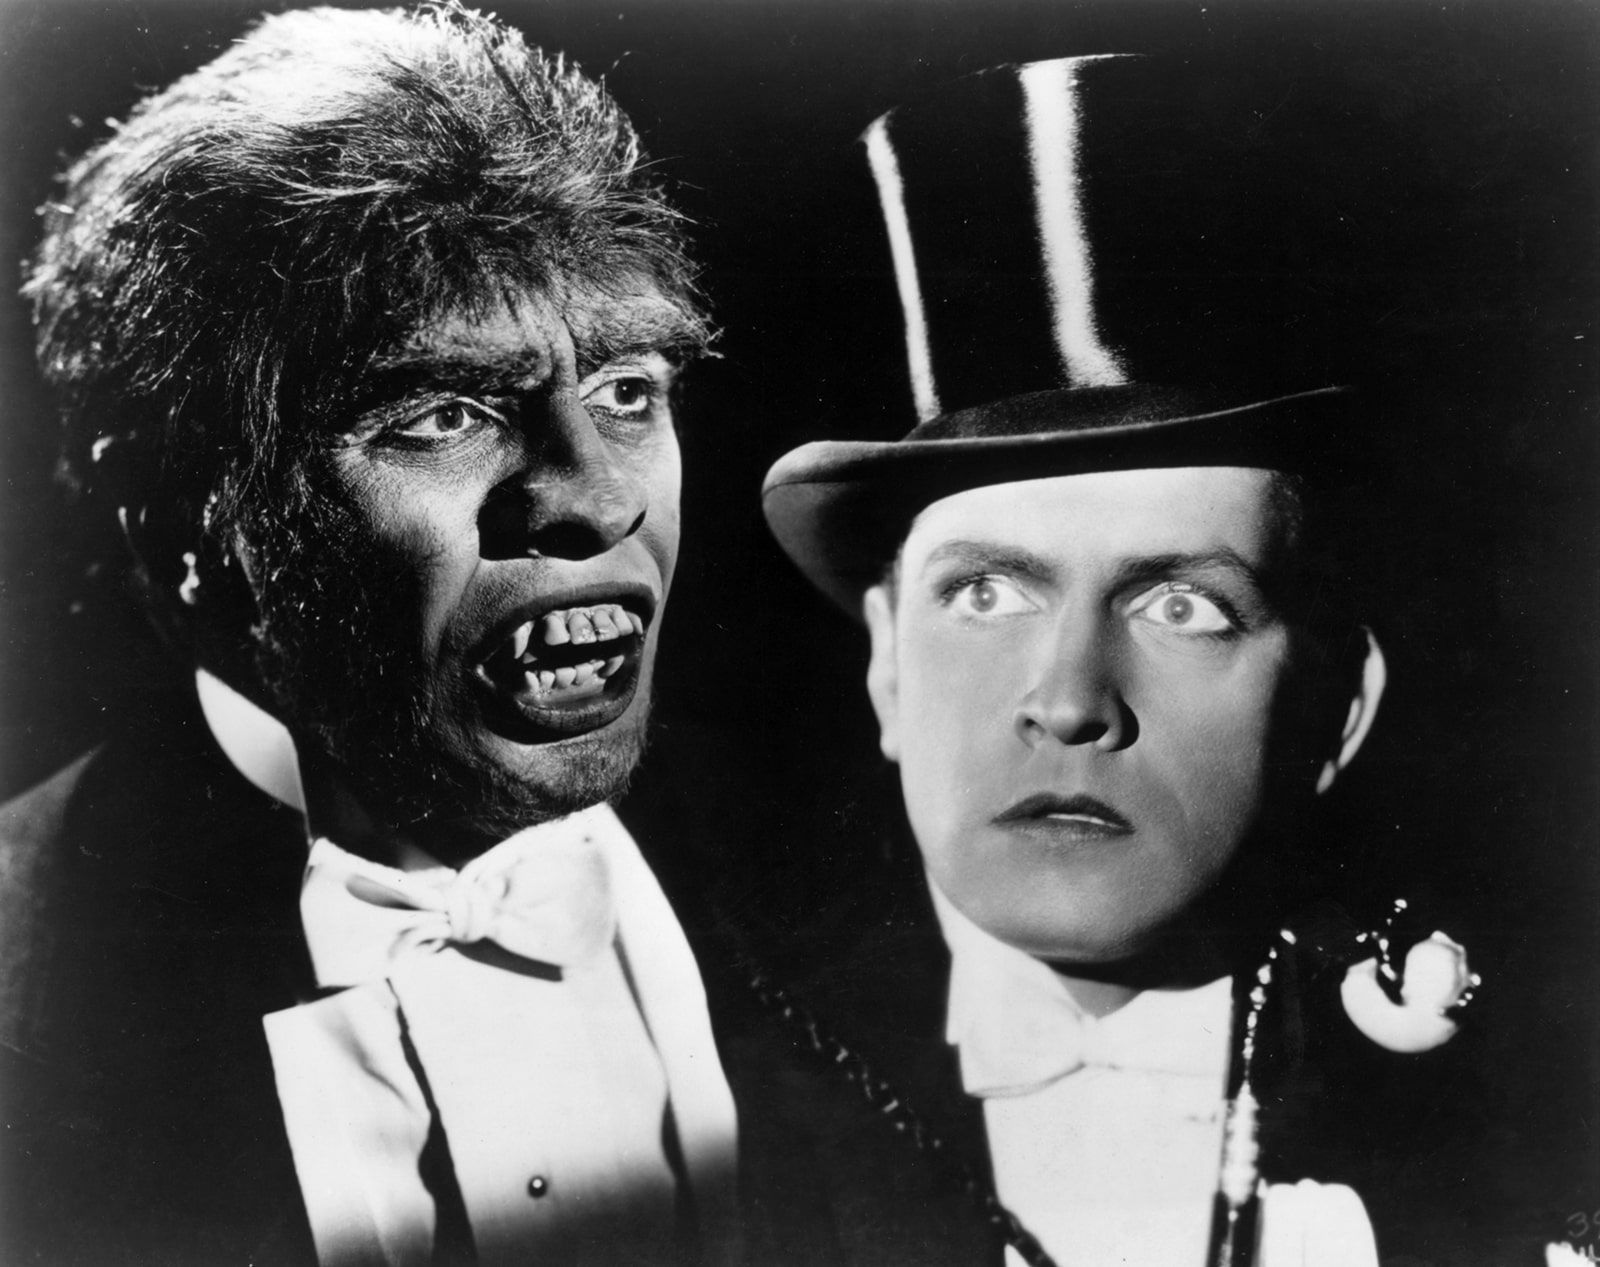 The Mysterious Case of Doctor Jekyll and Mister Hyde